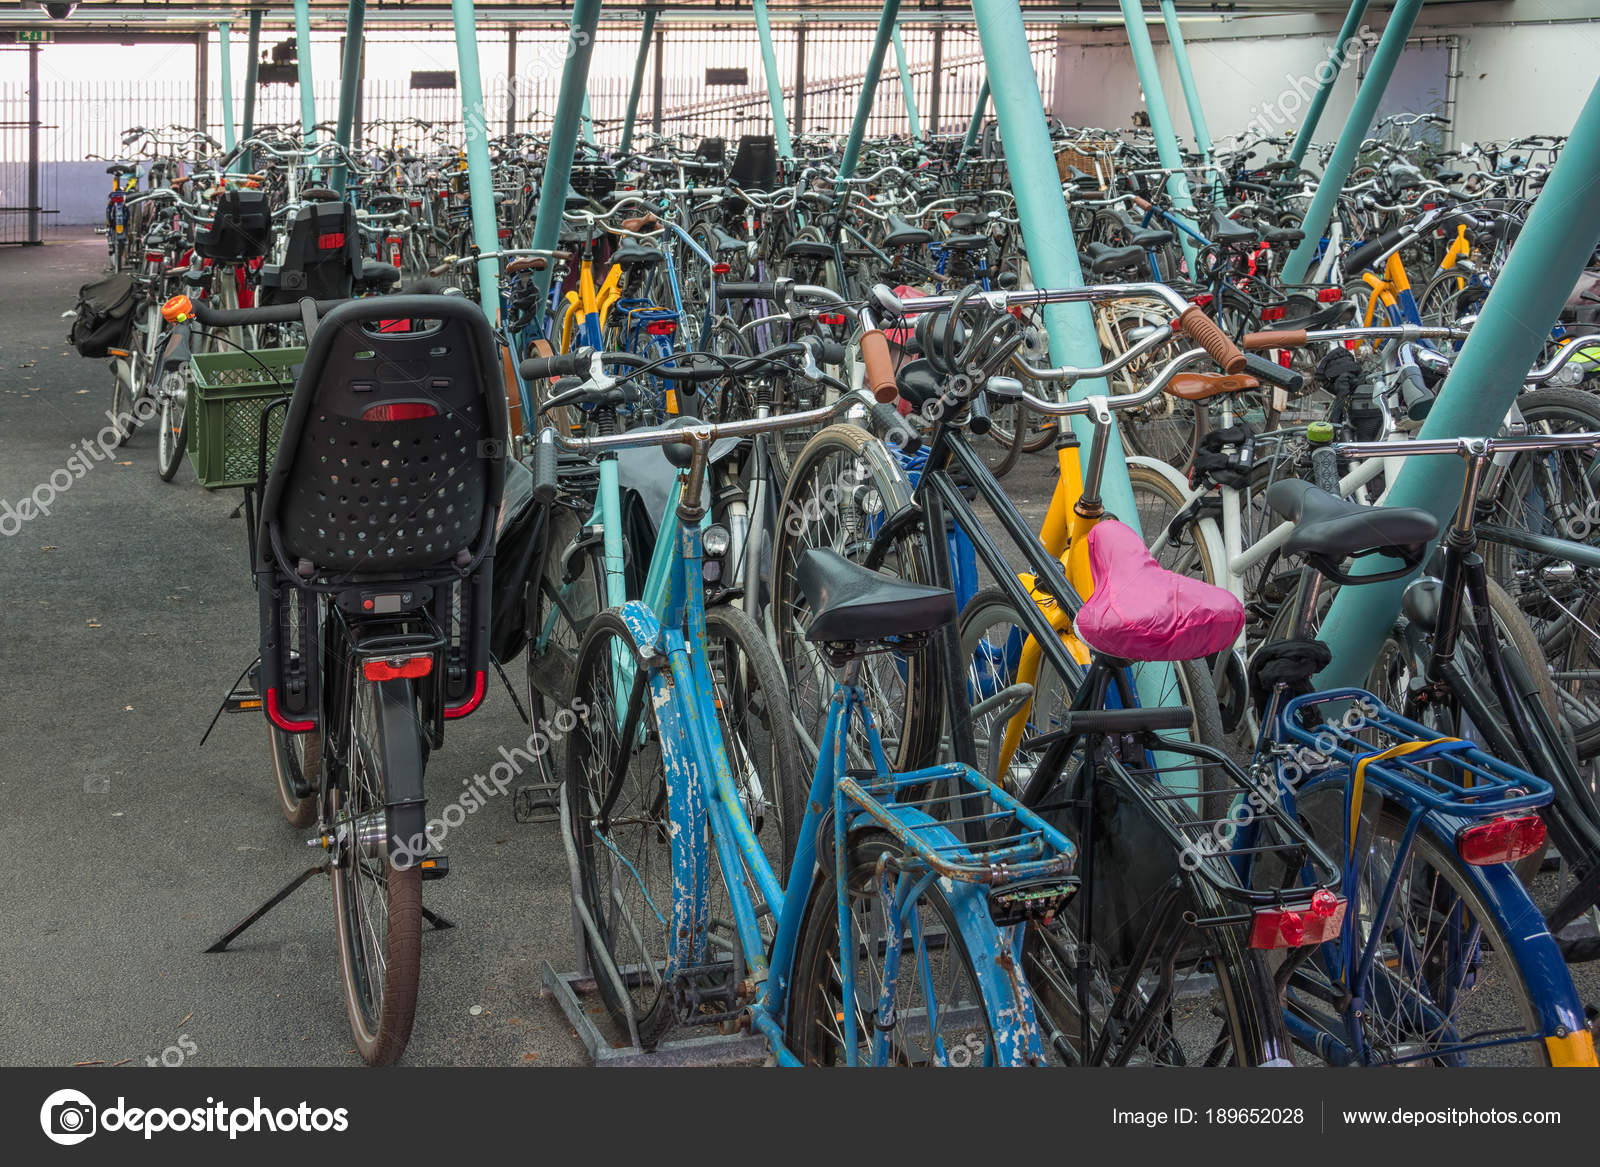 Parking Garage Bike Rack Parking Garage Of Bicycles With Bike Racks And Bikes Stock Photo